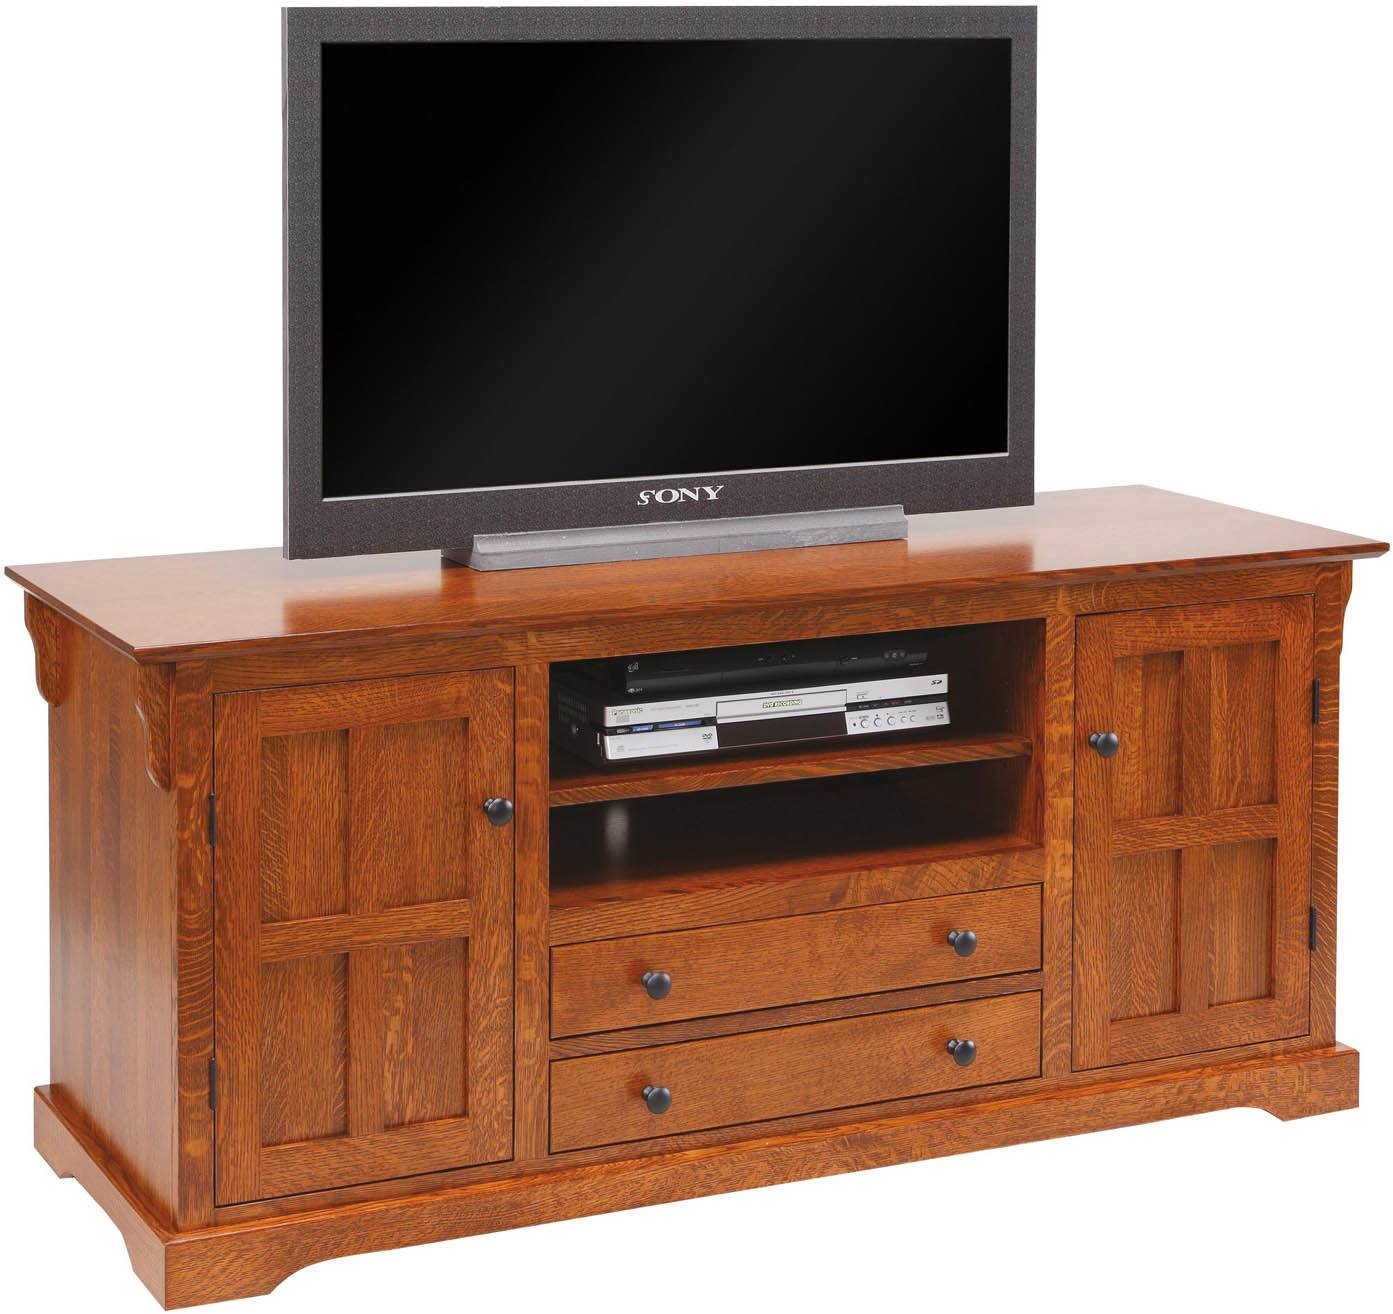 60 inch Mission Hills T.V. Stand